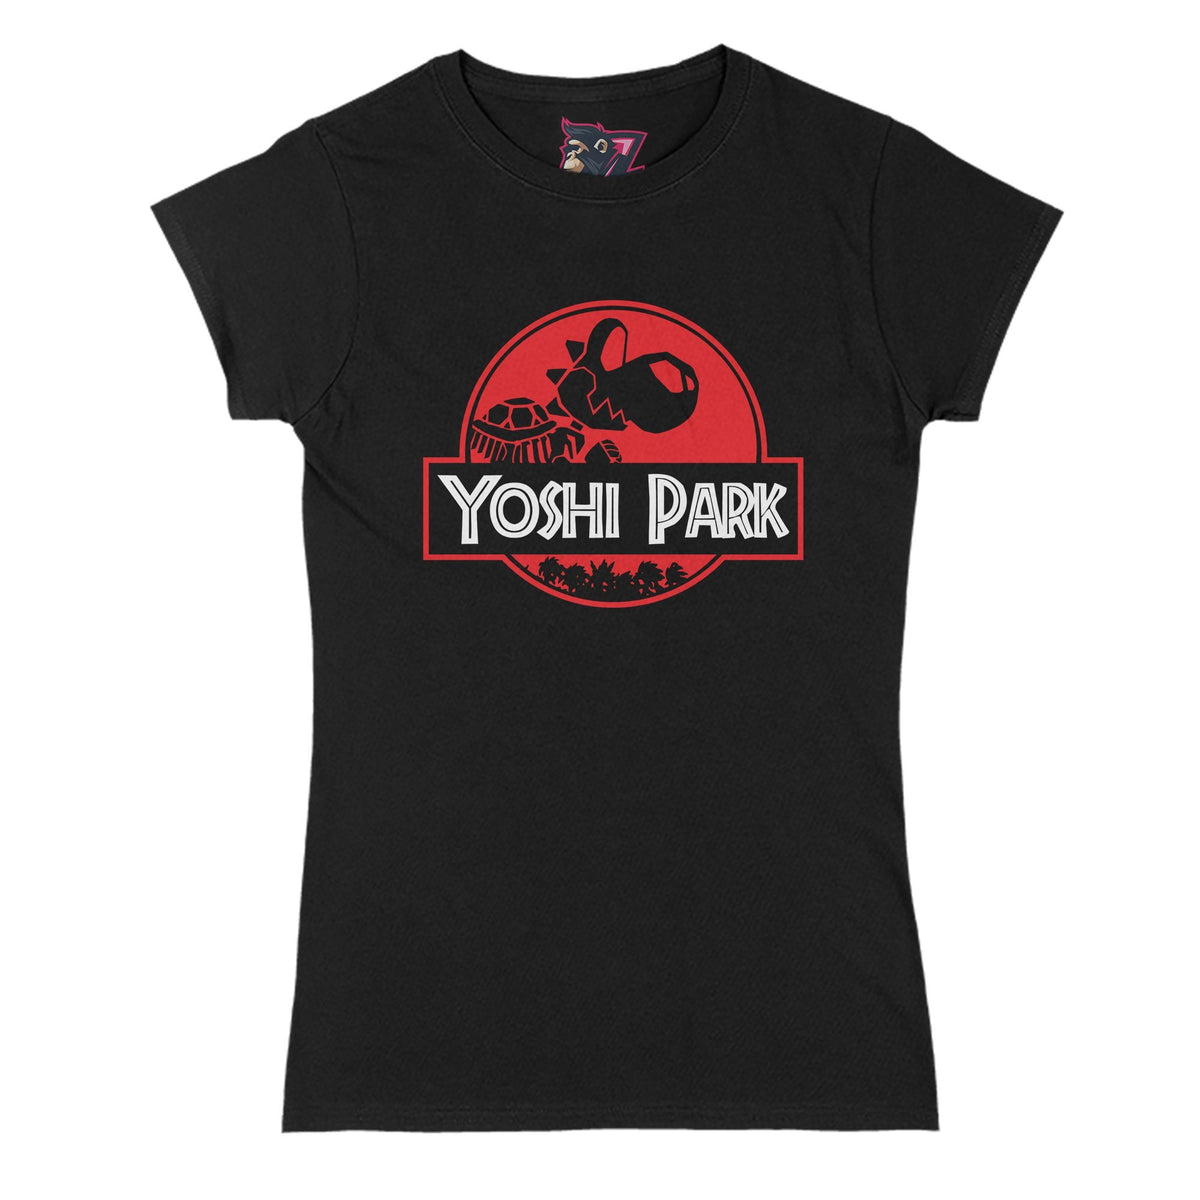 Yoshi Park Primate Novelty Women's T-Shirt Adults: S